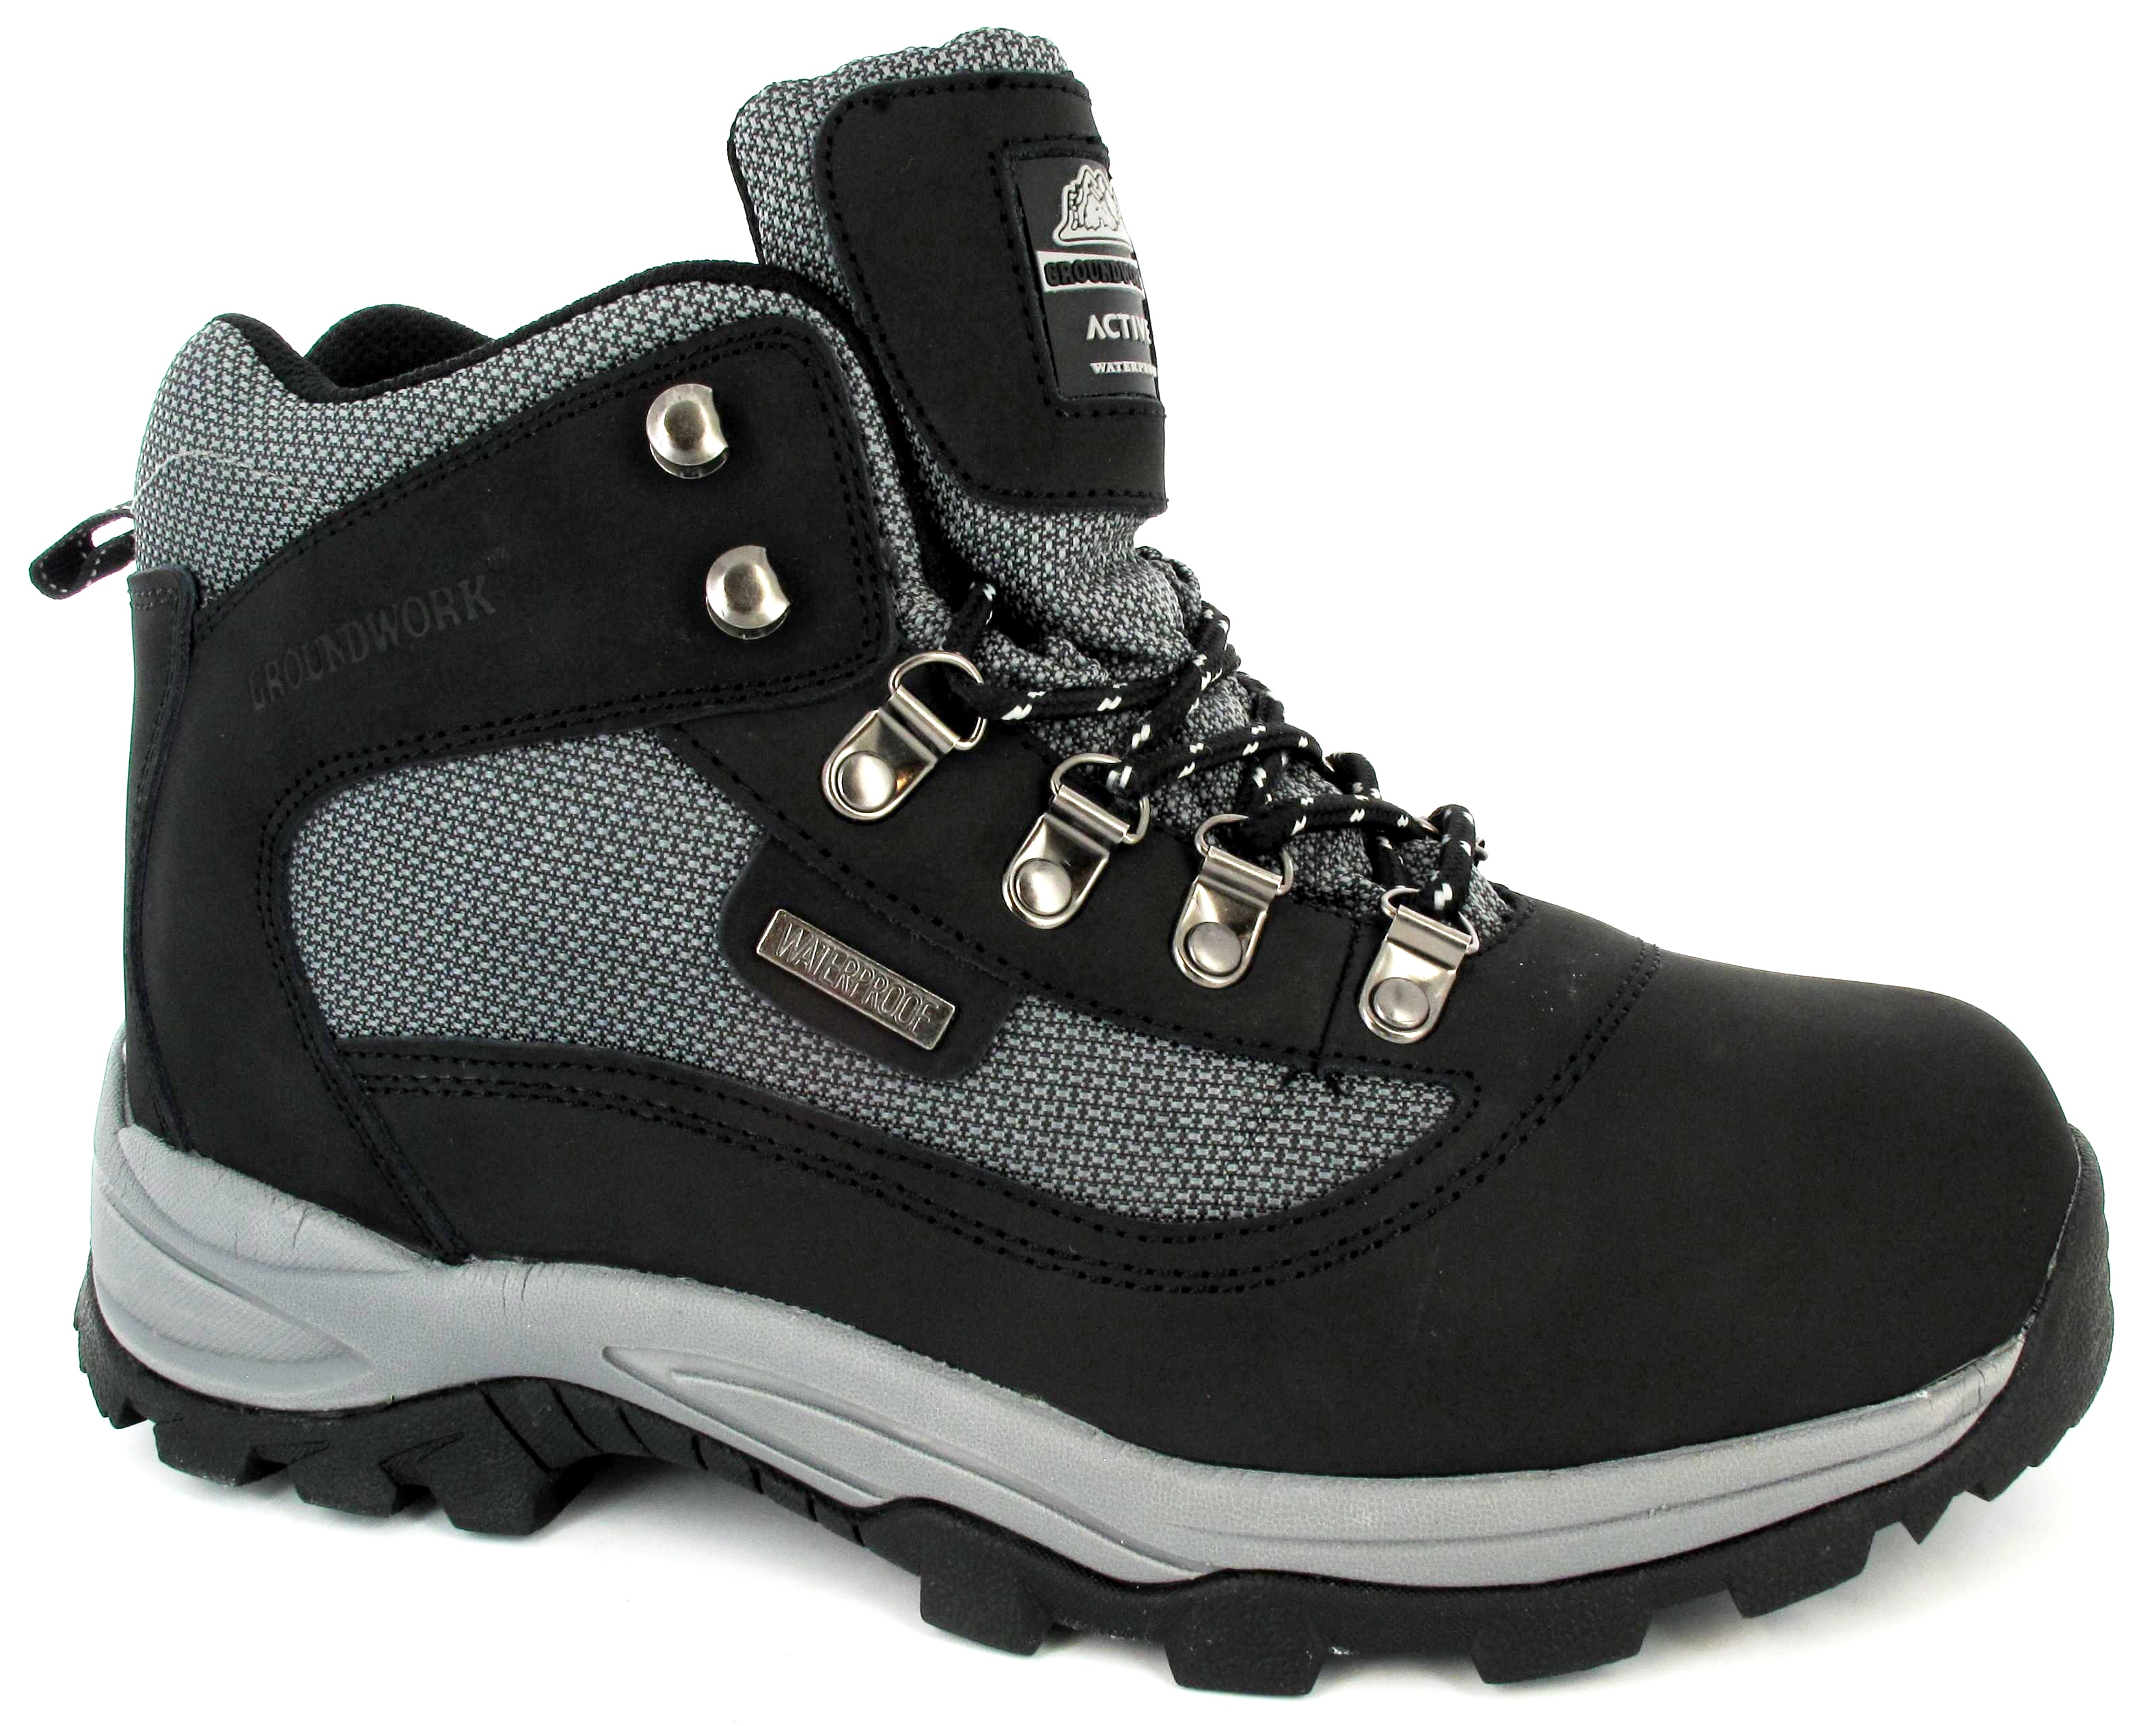 GENTS-HIKING-WATERPROOF-BOOTS-LEATHER-UPPER-MENS-WALKING-TREKKING-BOOTS-SIZE